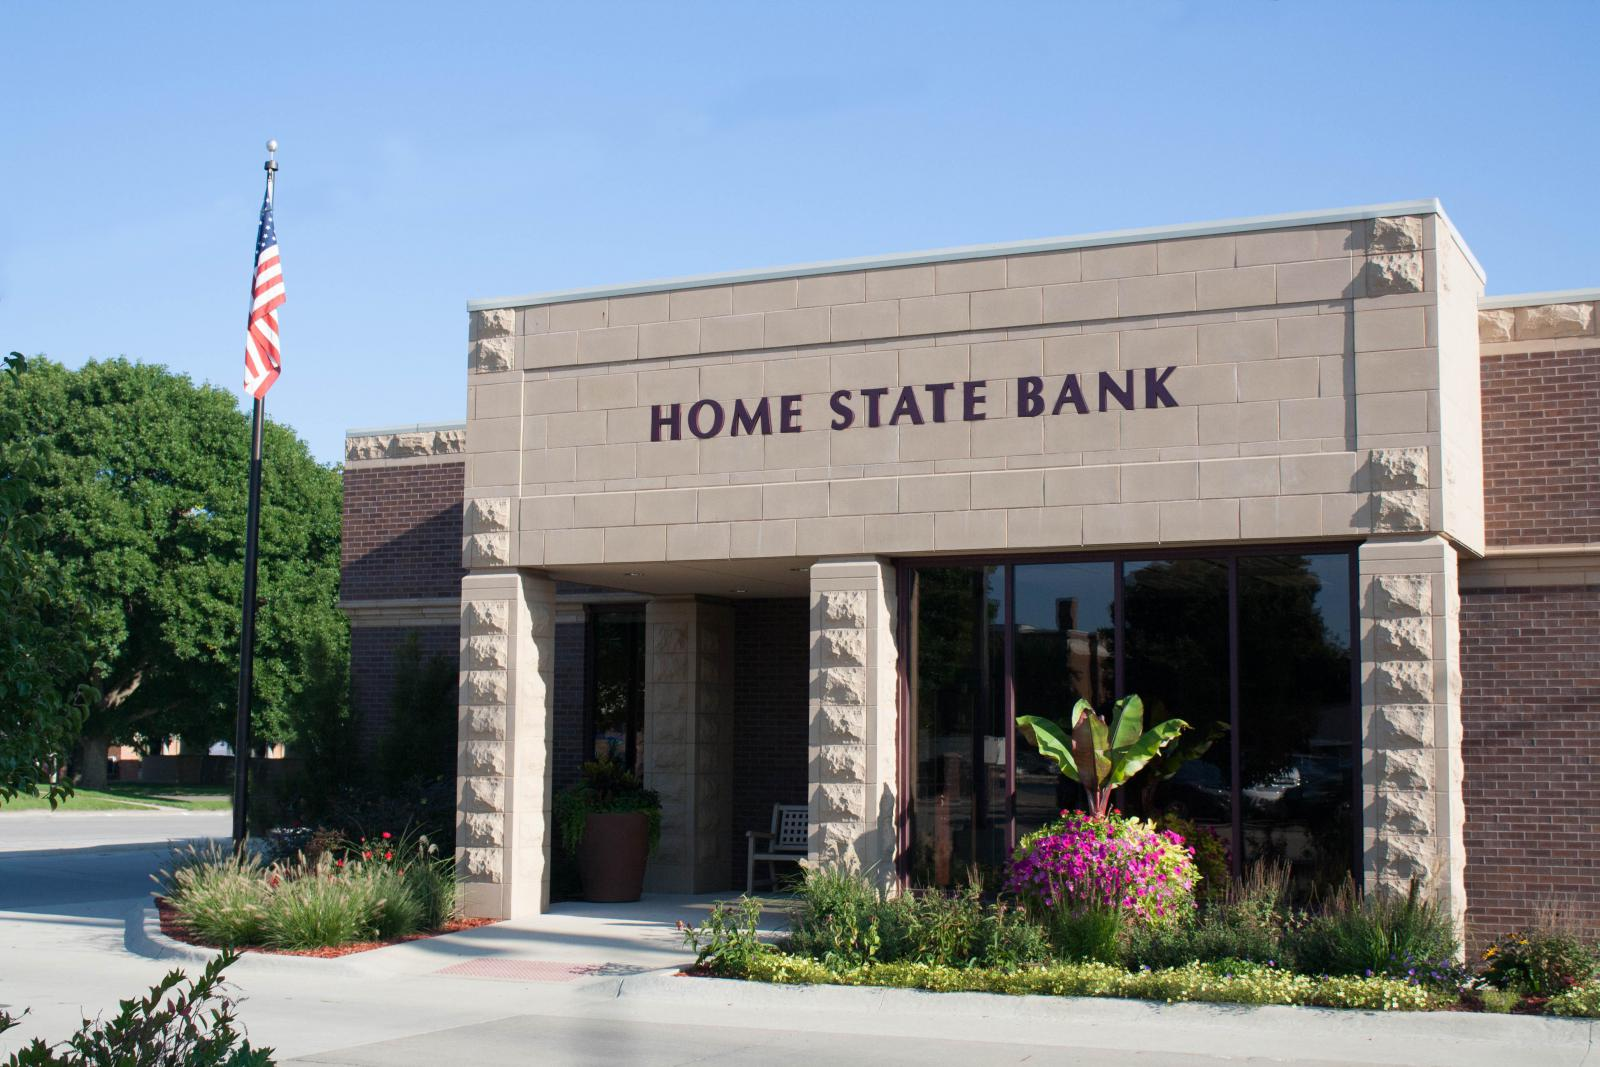 Home State Bank Building